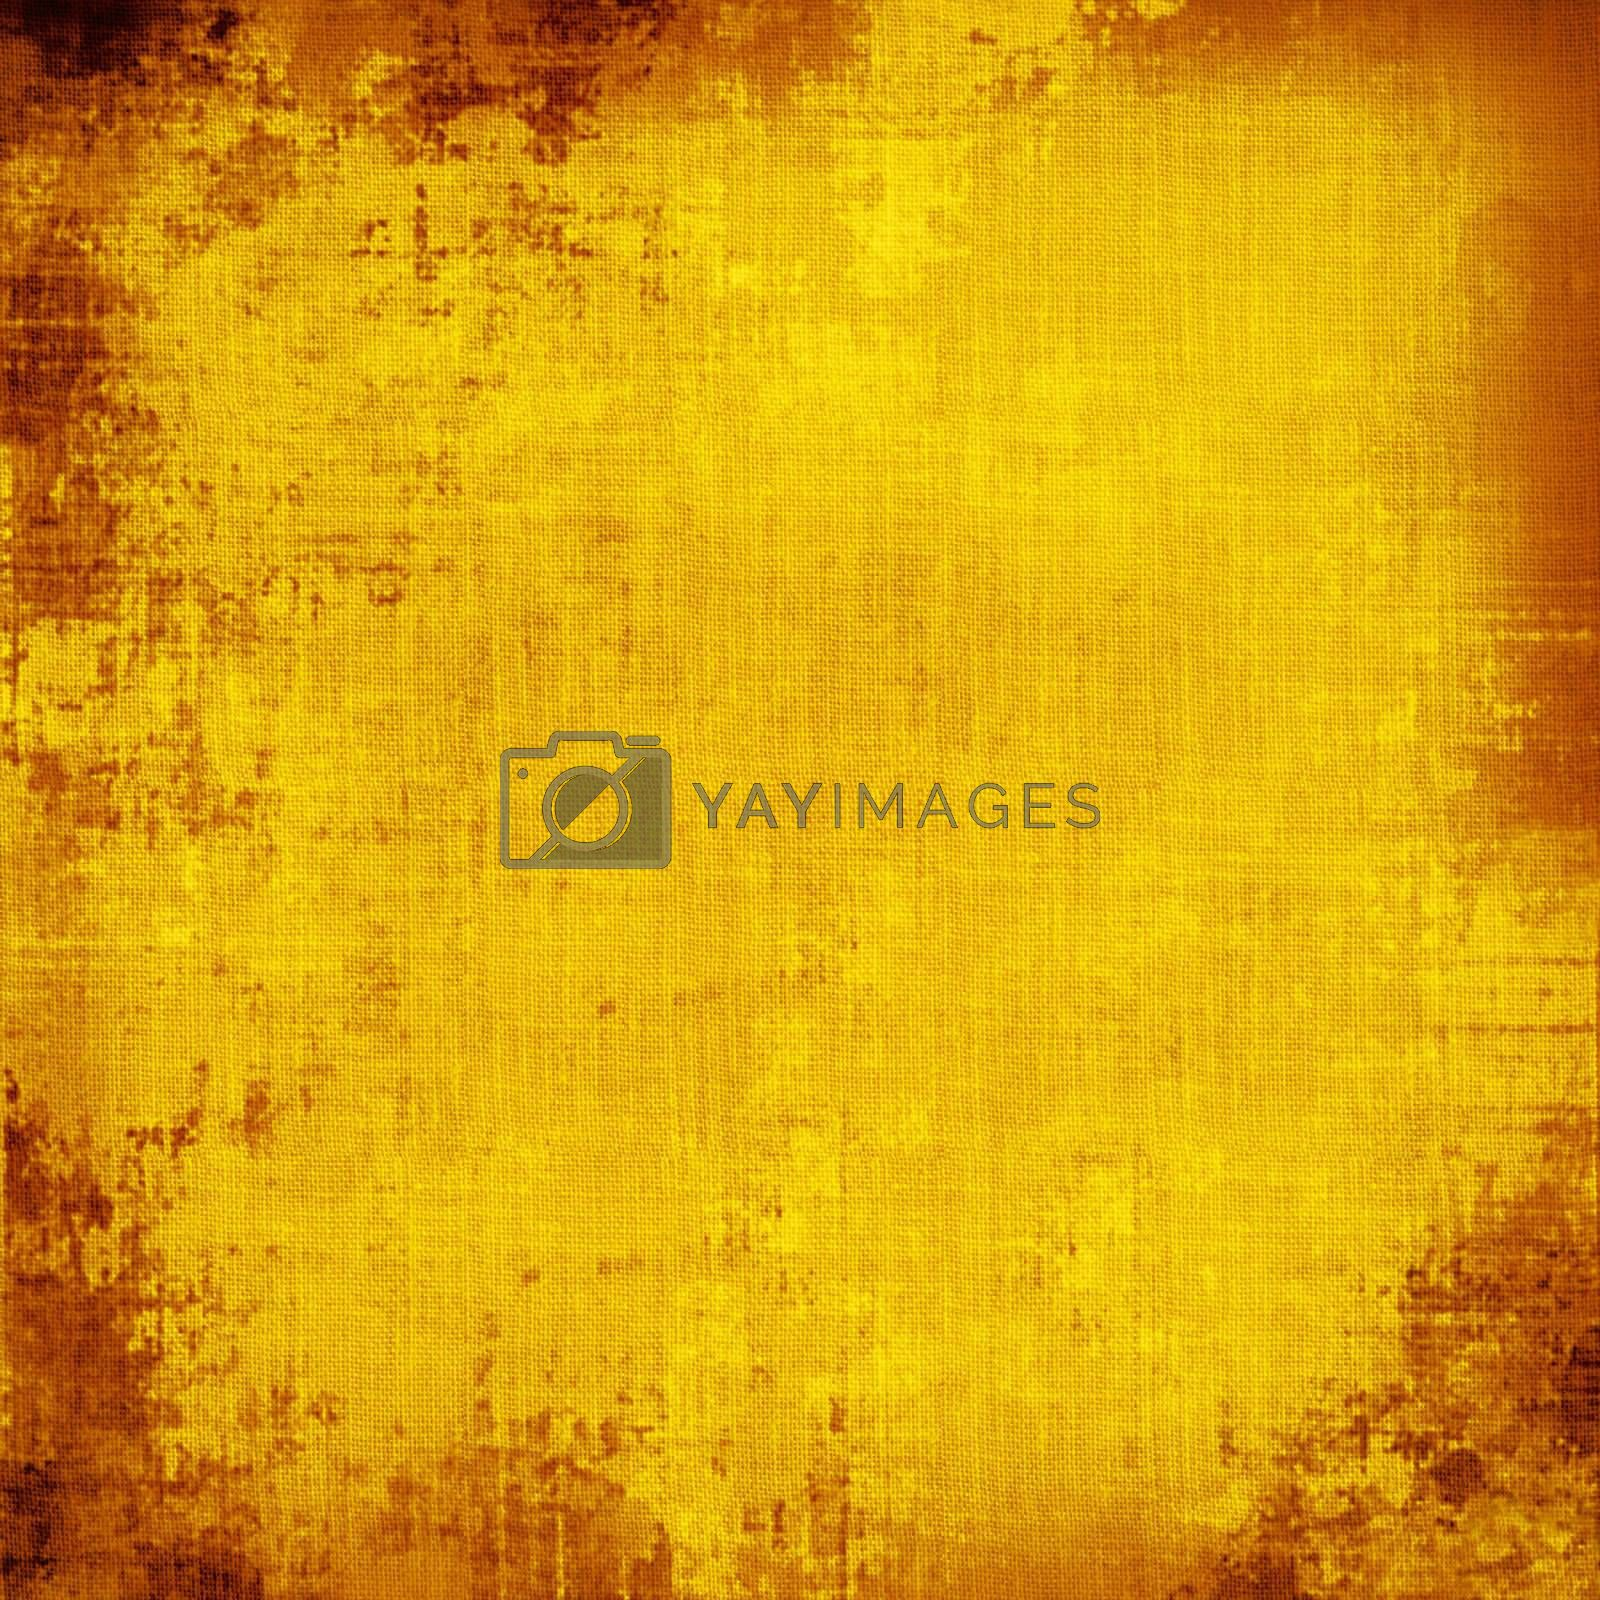 Square piece of yellow, grungy fabric with stains.